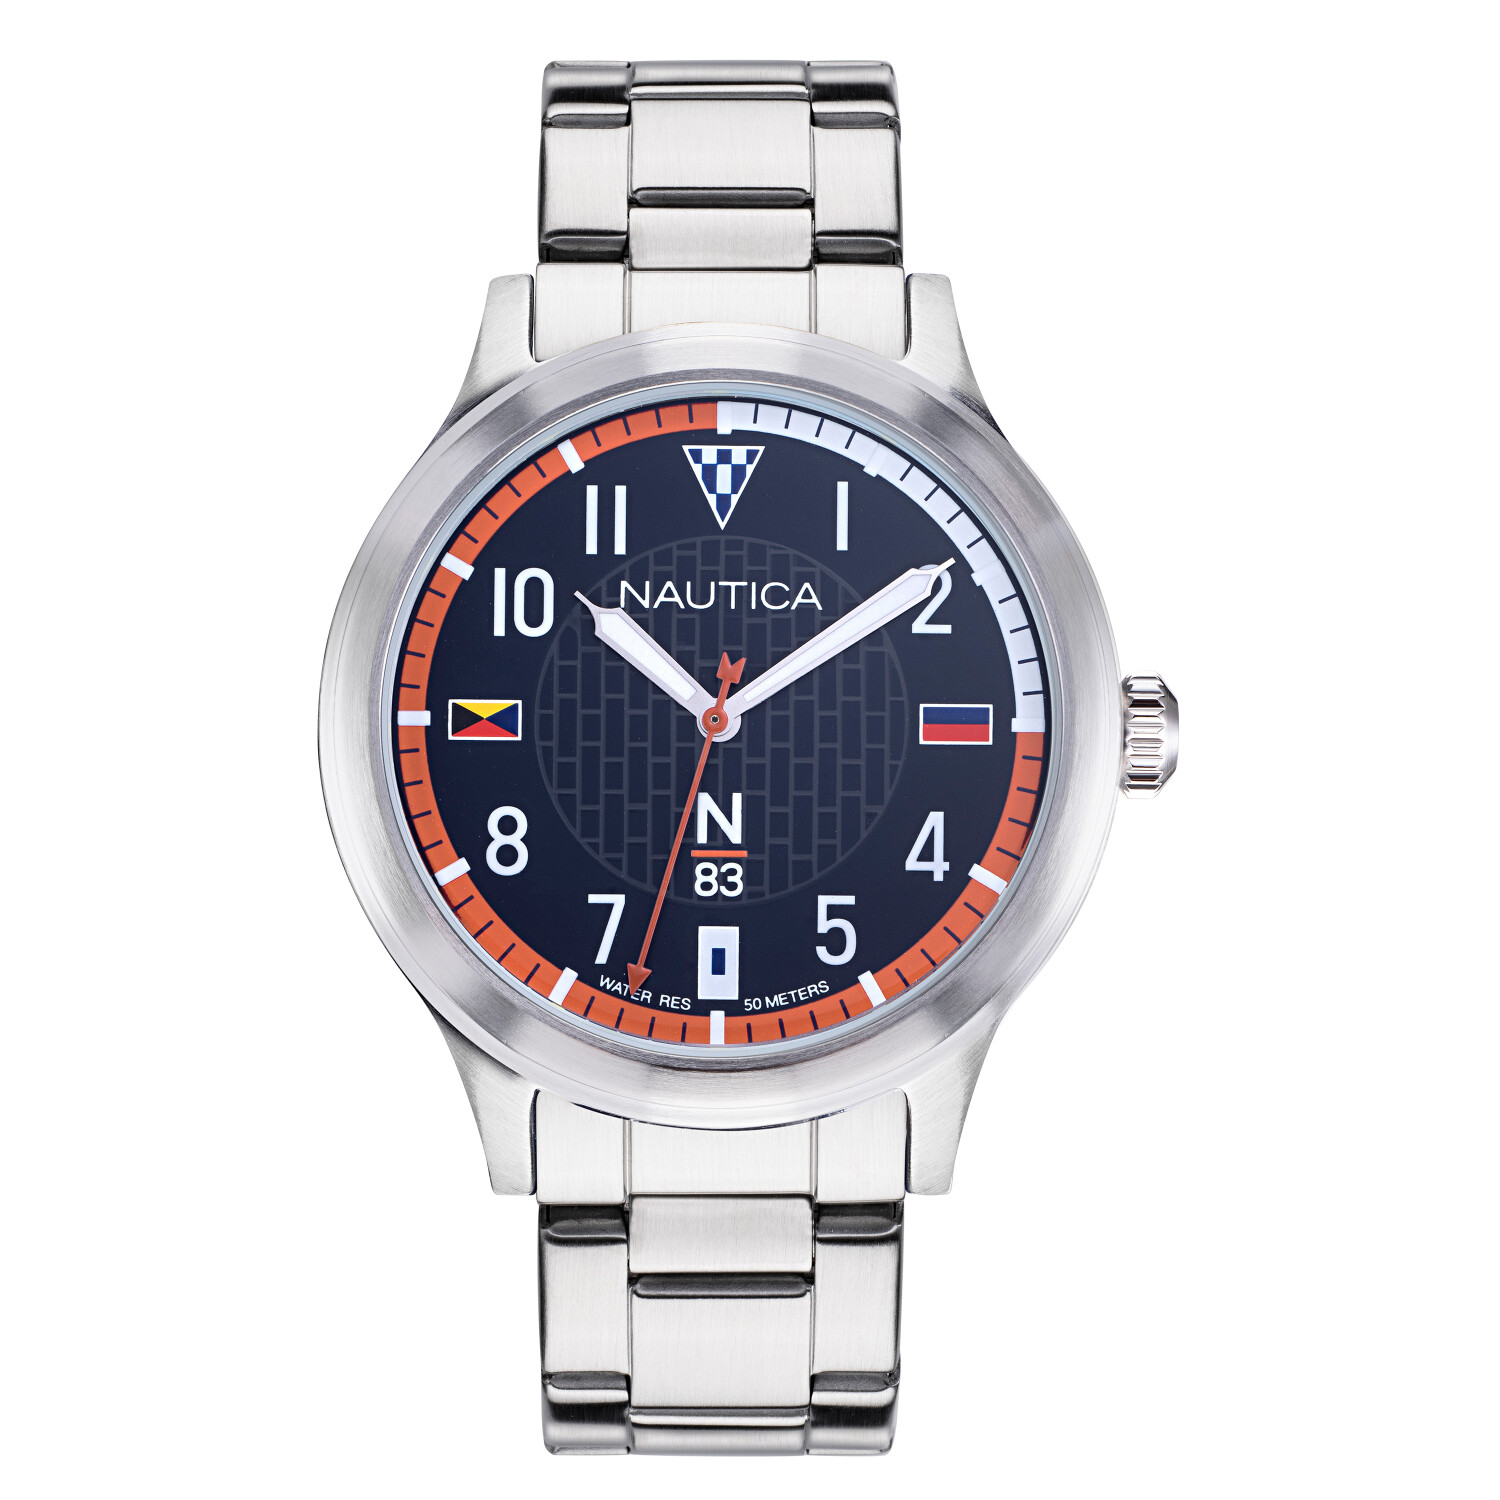 Nautica Watch NAPCFS908 Crissy Field, Analog, Water Resistant, Stainless Steel Strap, Deployment Buckle, Snap Down Crown, Silver